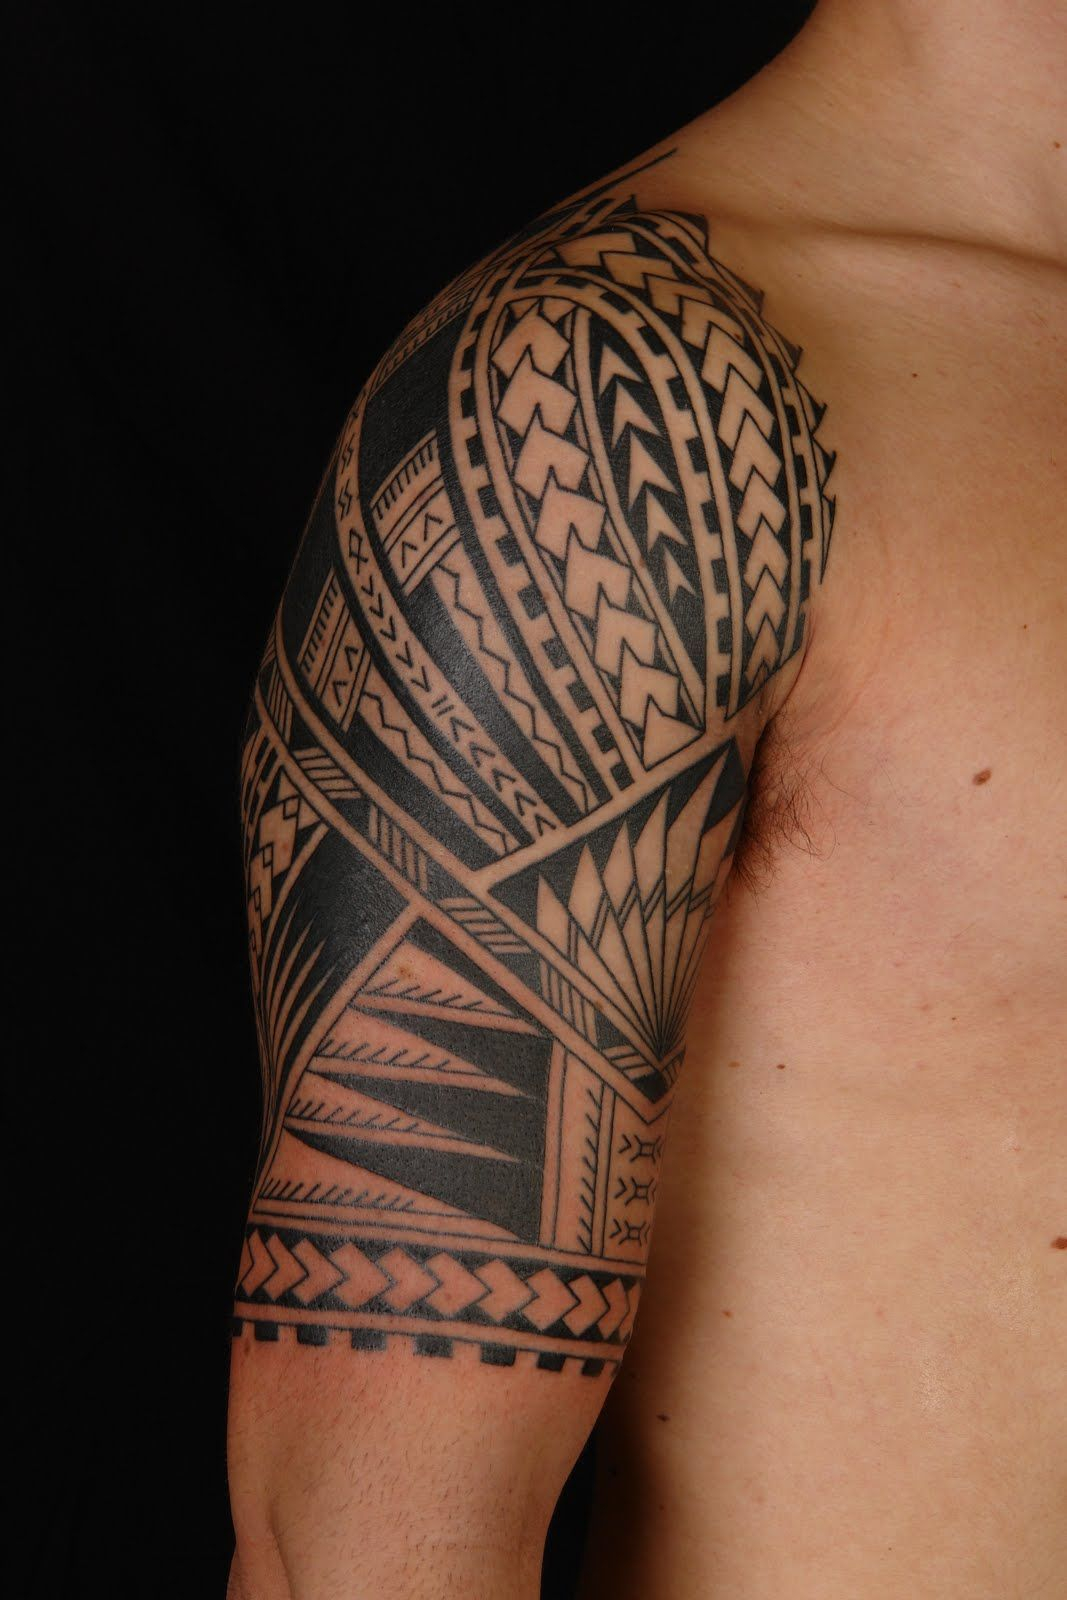 Polynesian Tattoos Gallery And Article Ink Done Right Poly Tat regarding measurements 1067 X 1600